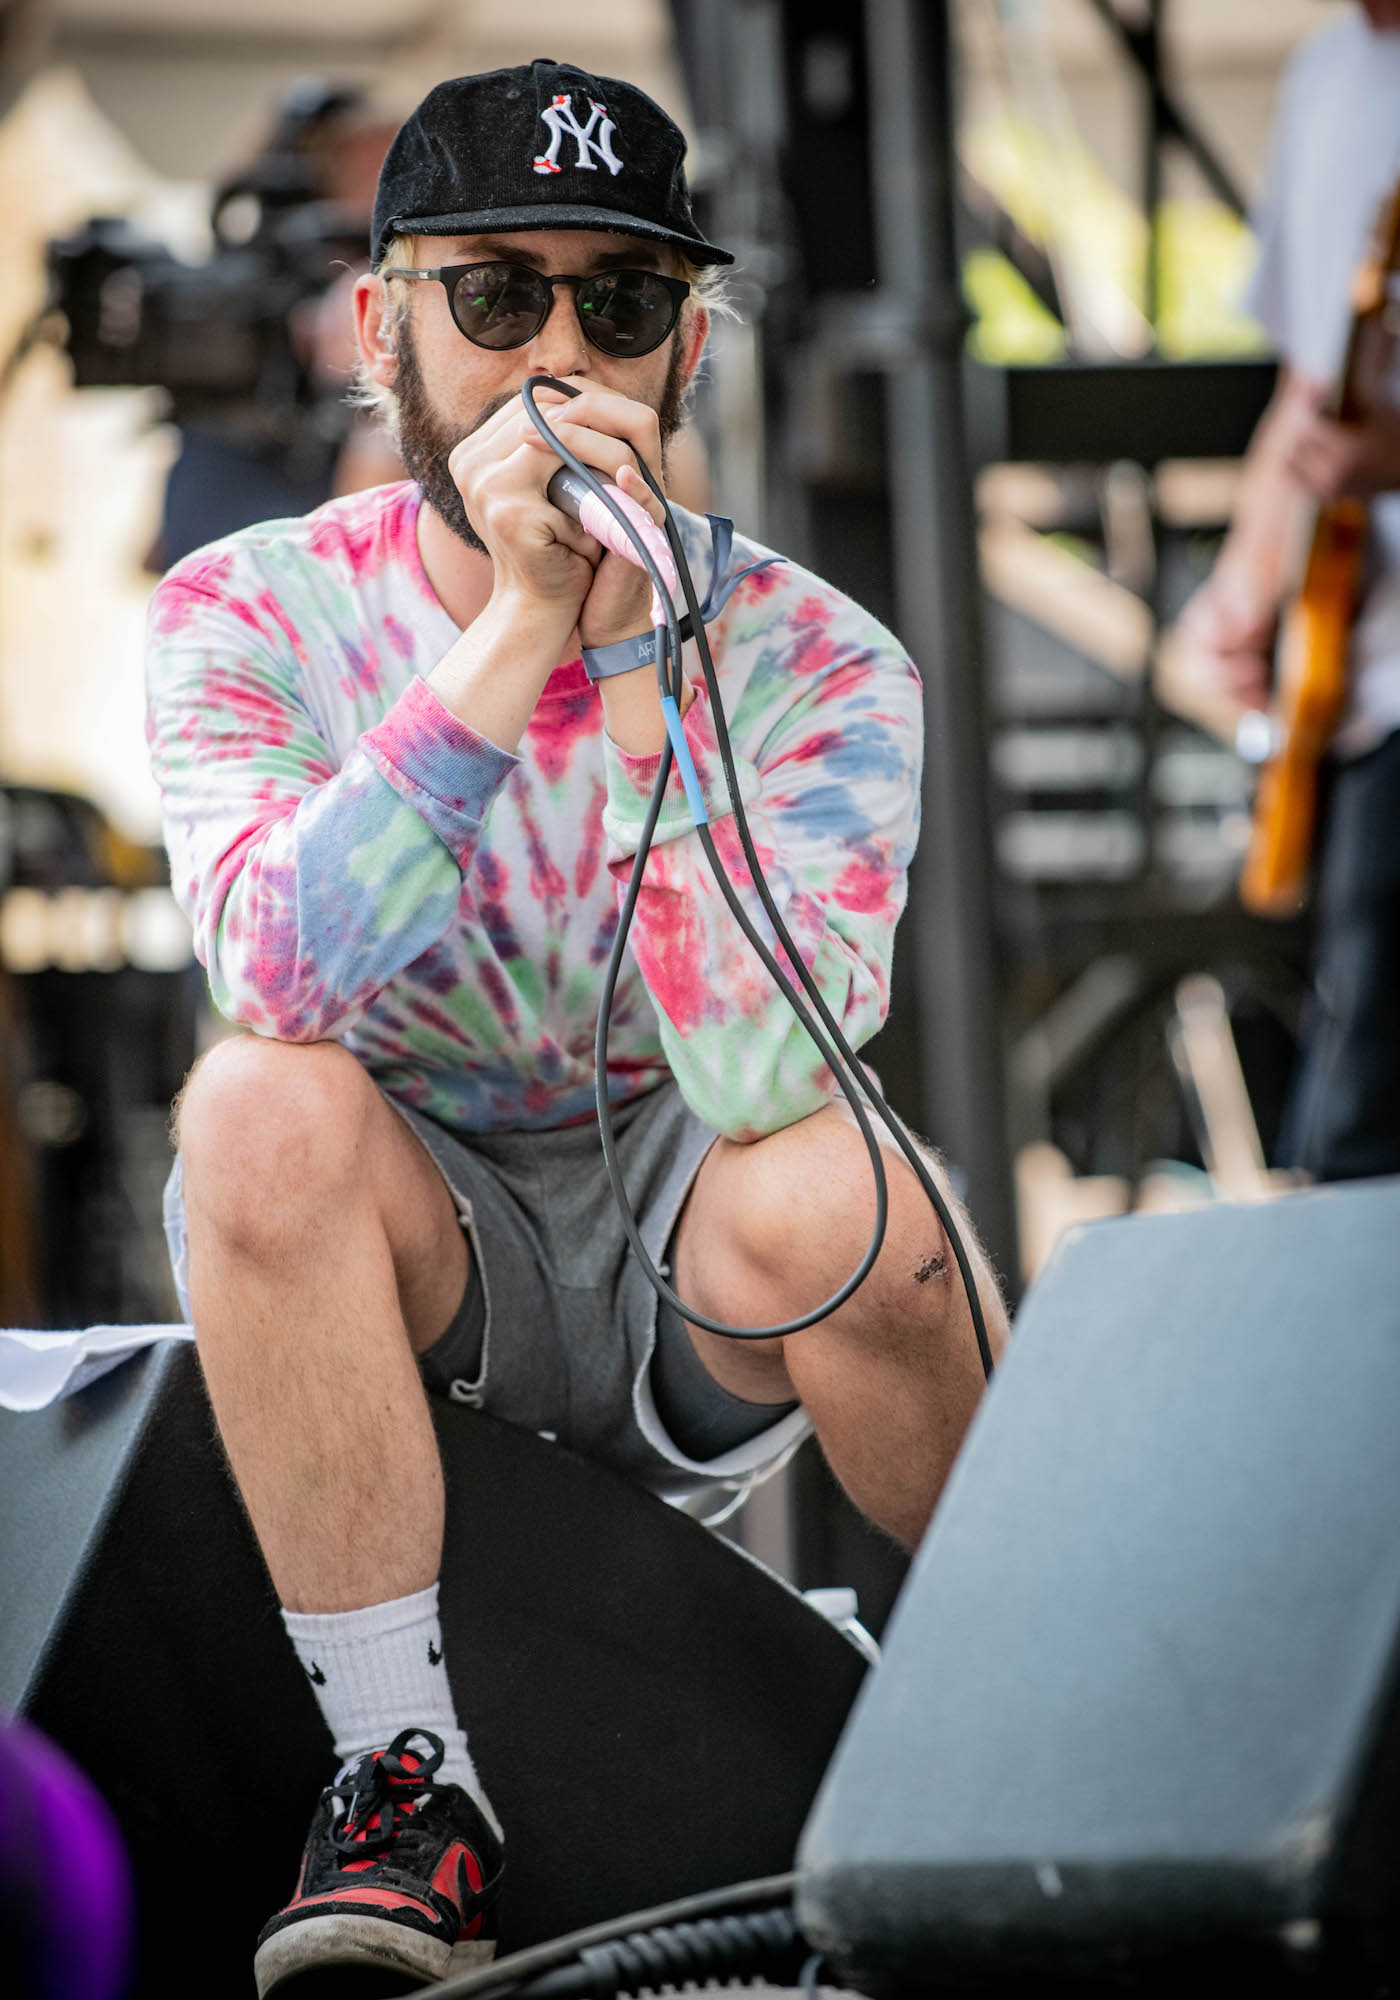 Oso Oso Live at Pitchfork [GALLERY] 9